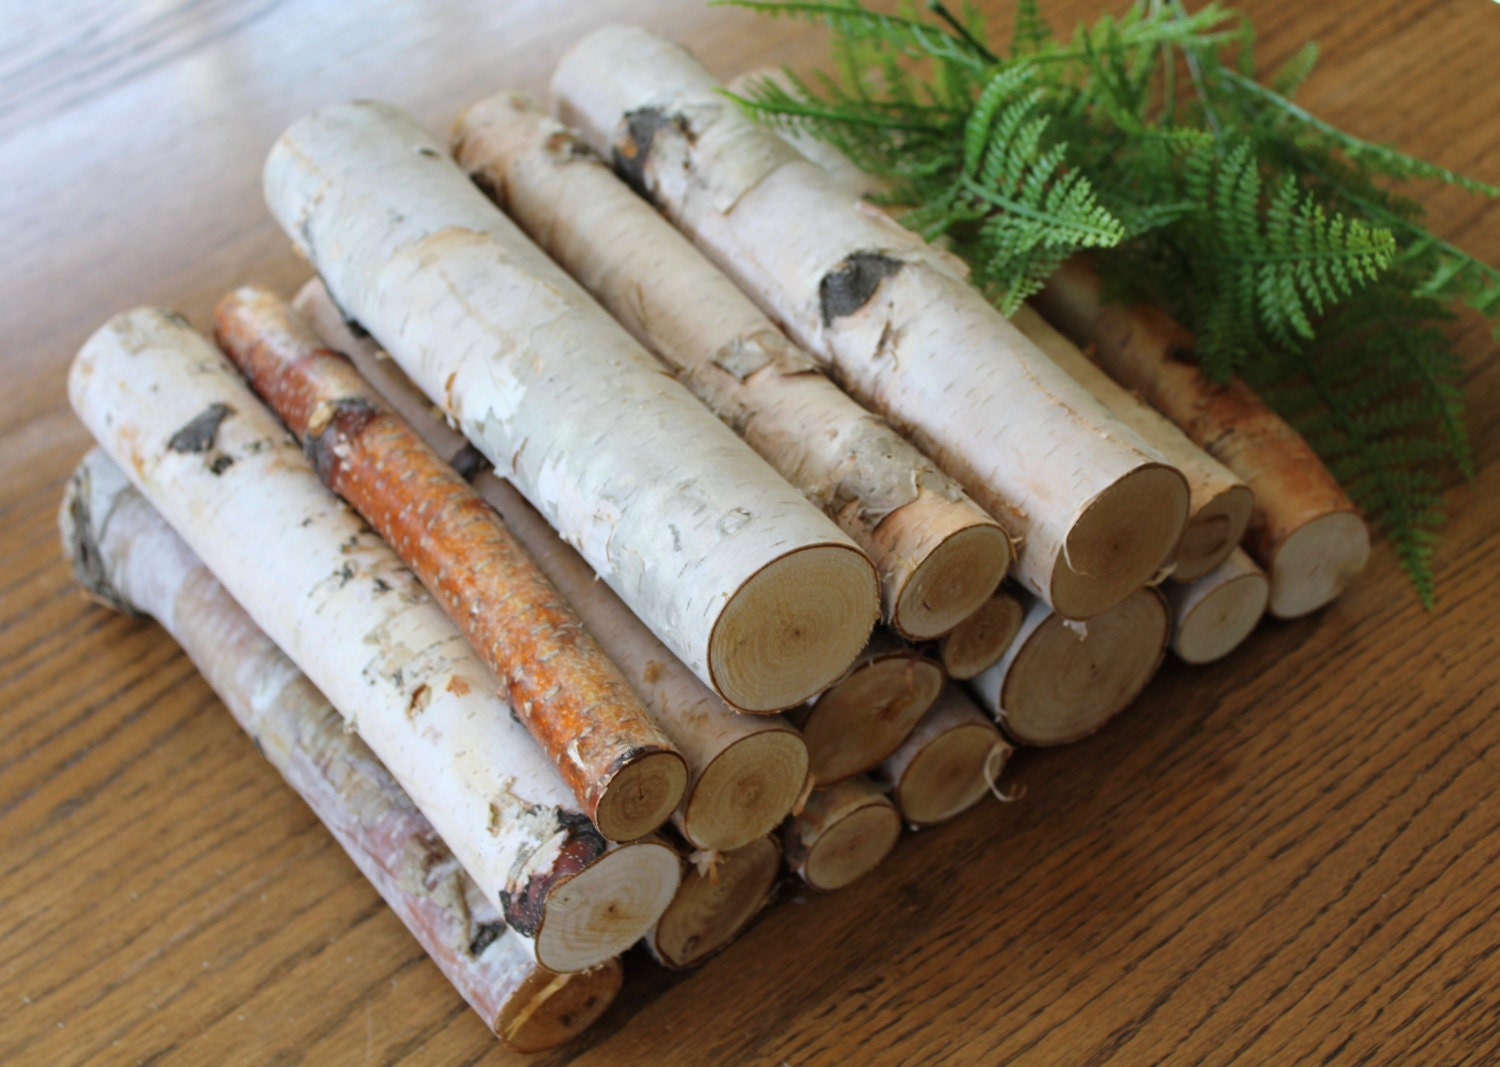 10 Birch Logs Decorative Birch Logs Box Full Of